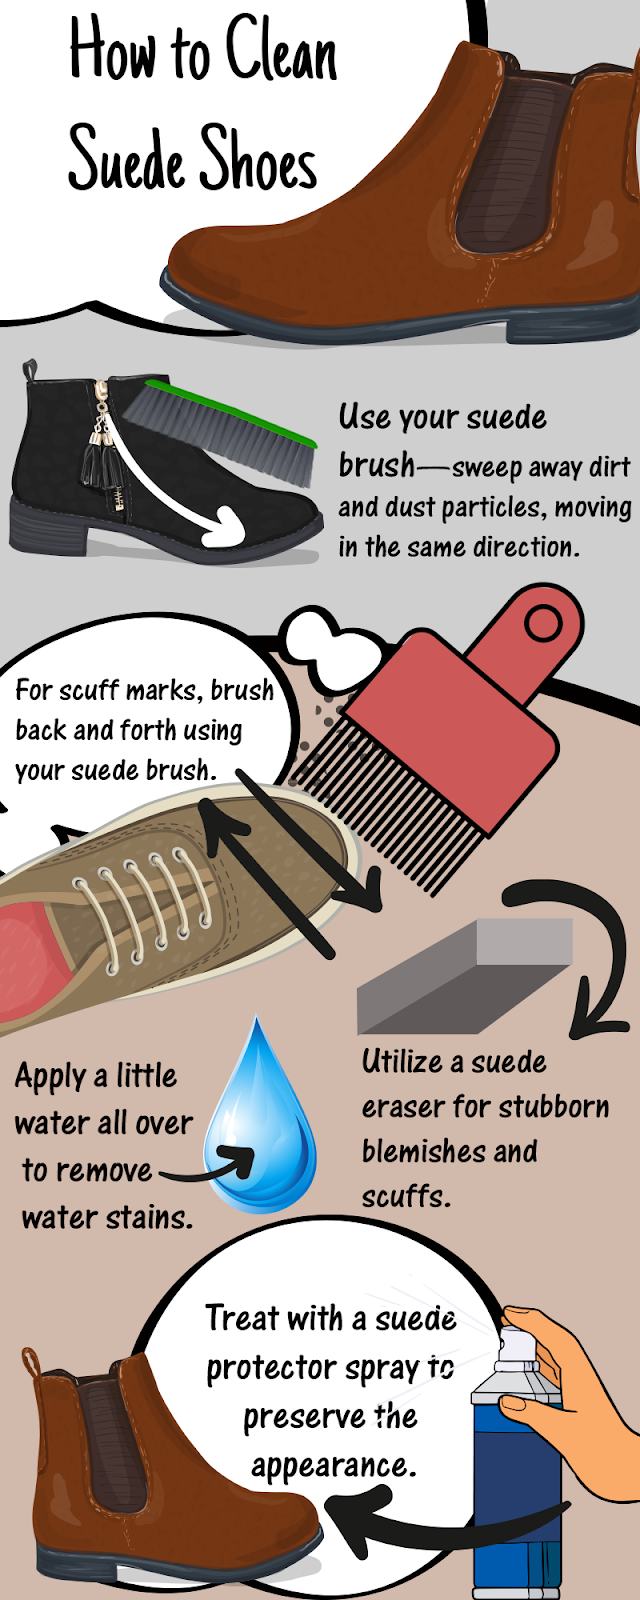 an infographic about how to clean suede shoes